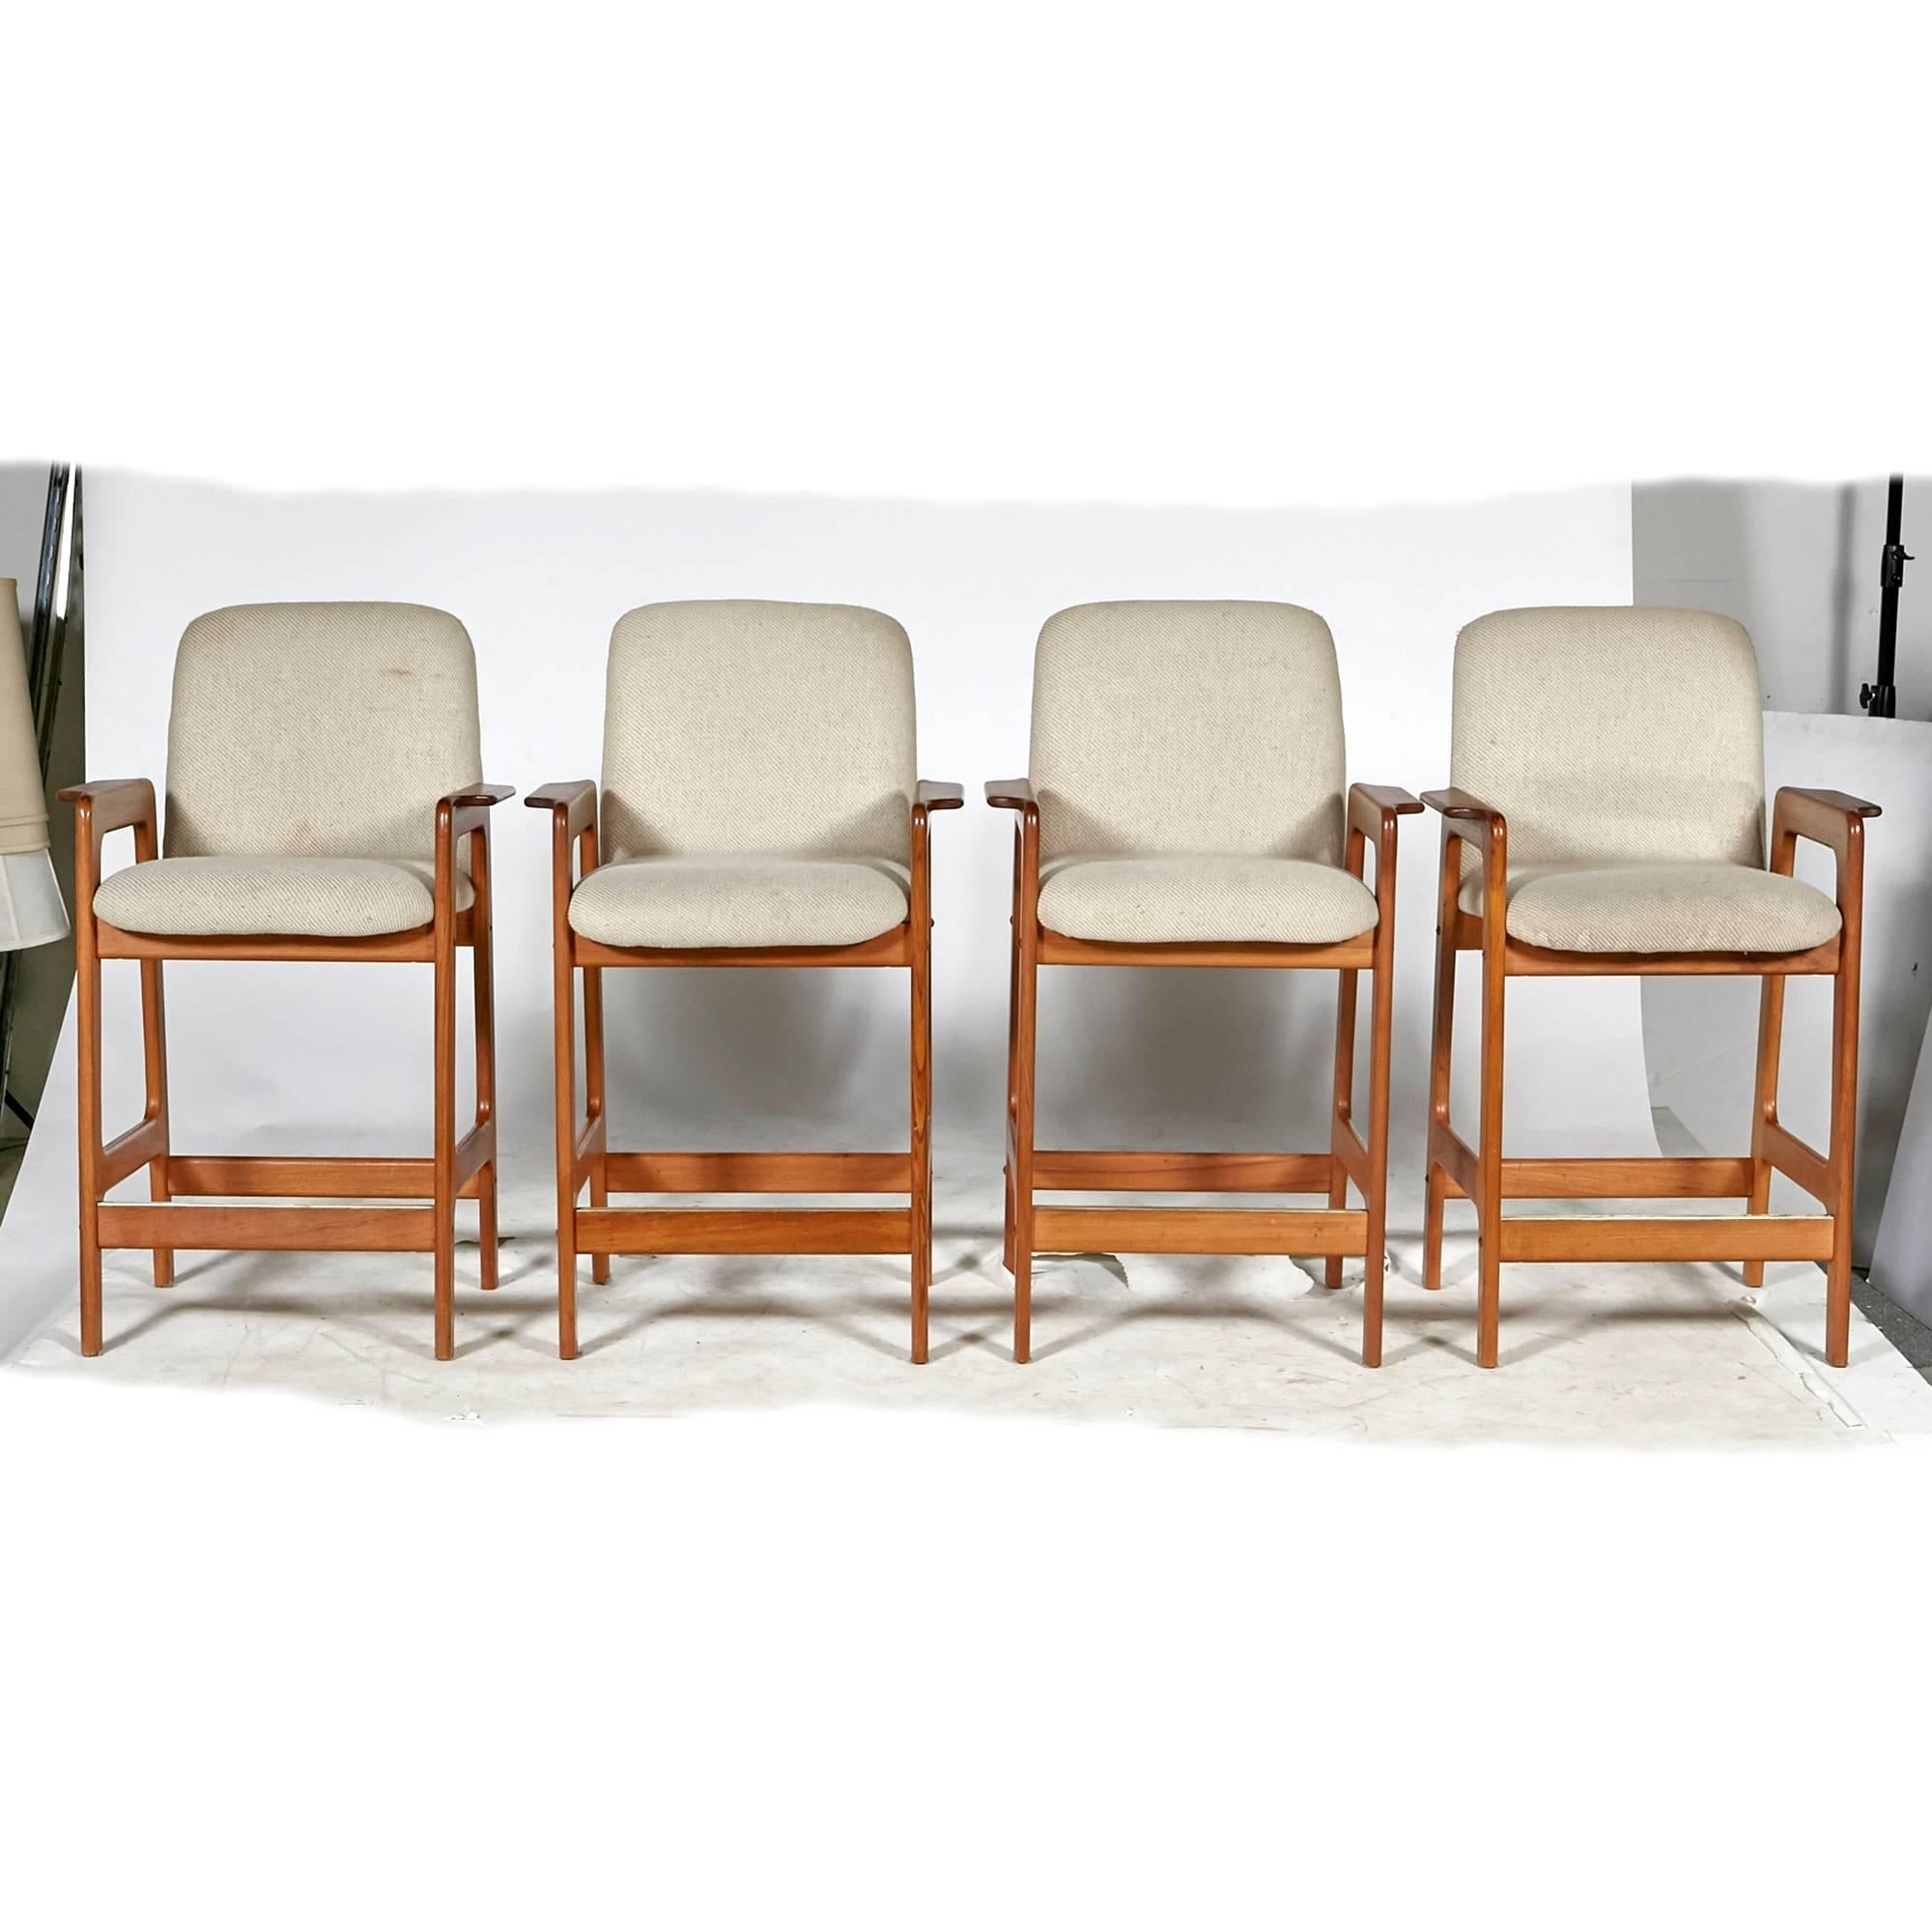 midcentury rocking chair tall director chairs benny linden teak bar stools, set of four for sale at 1stdibs